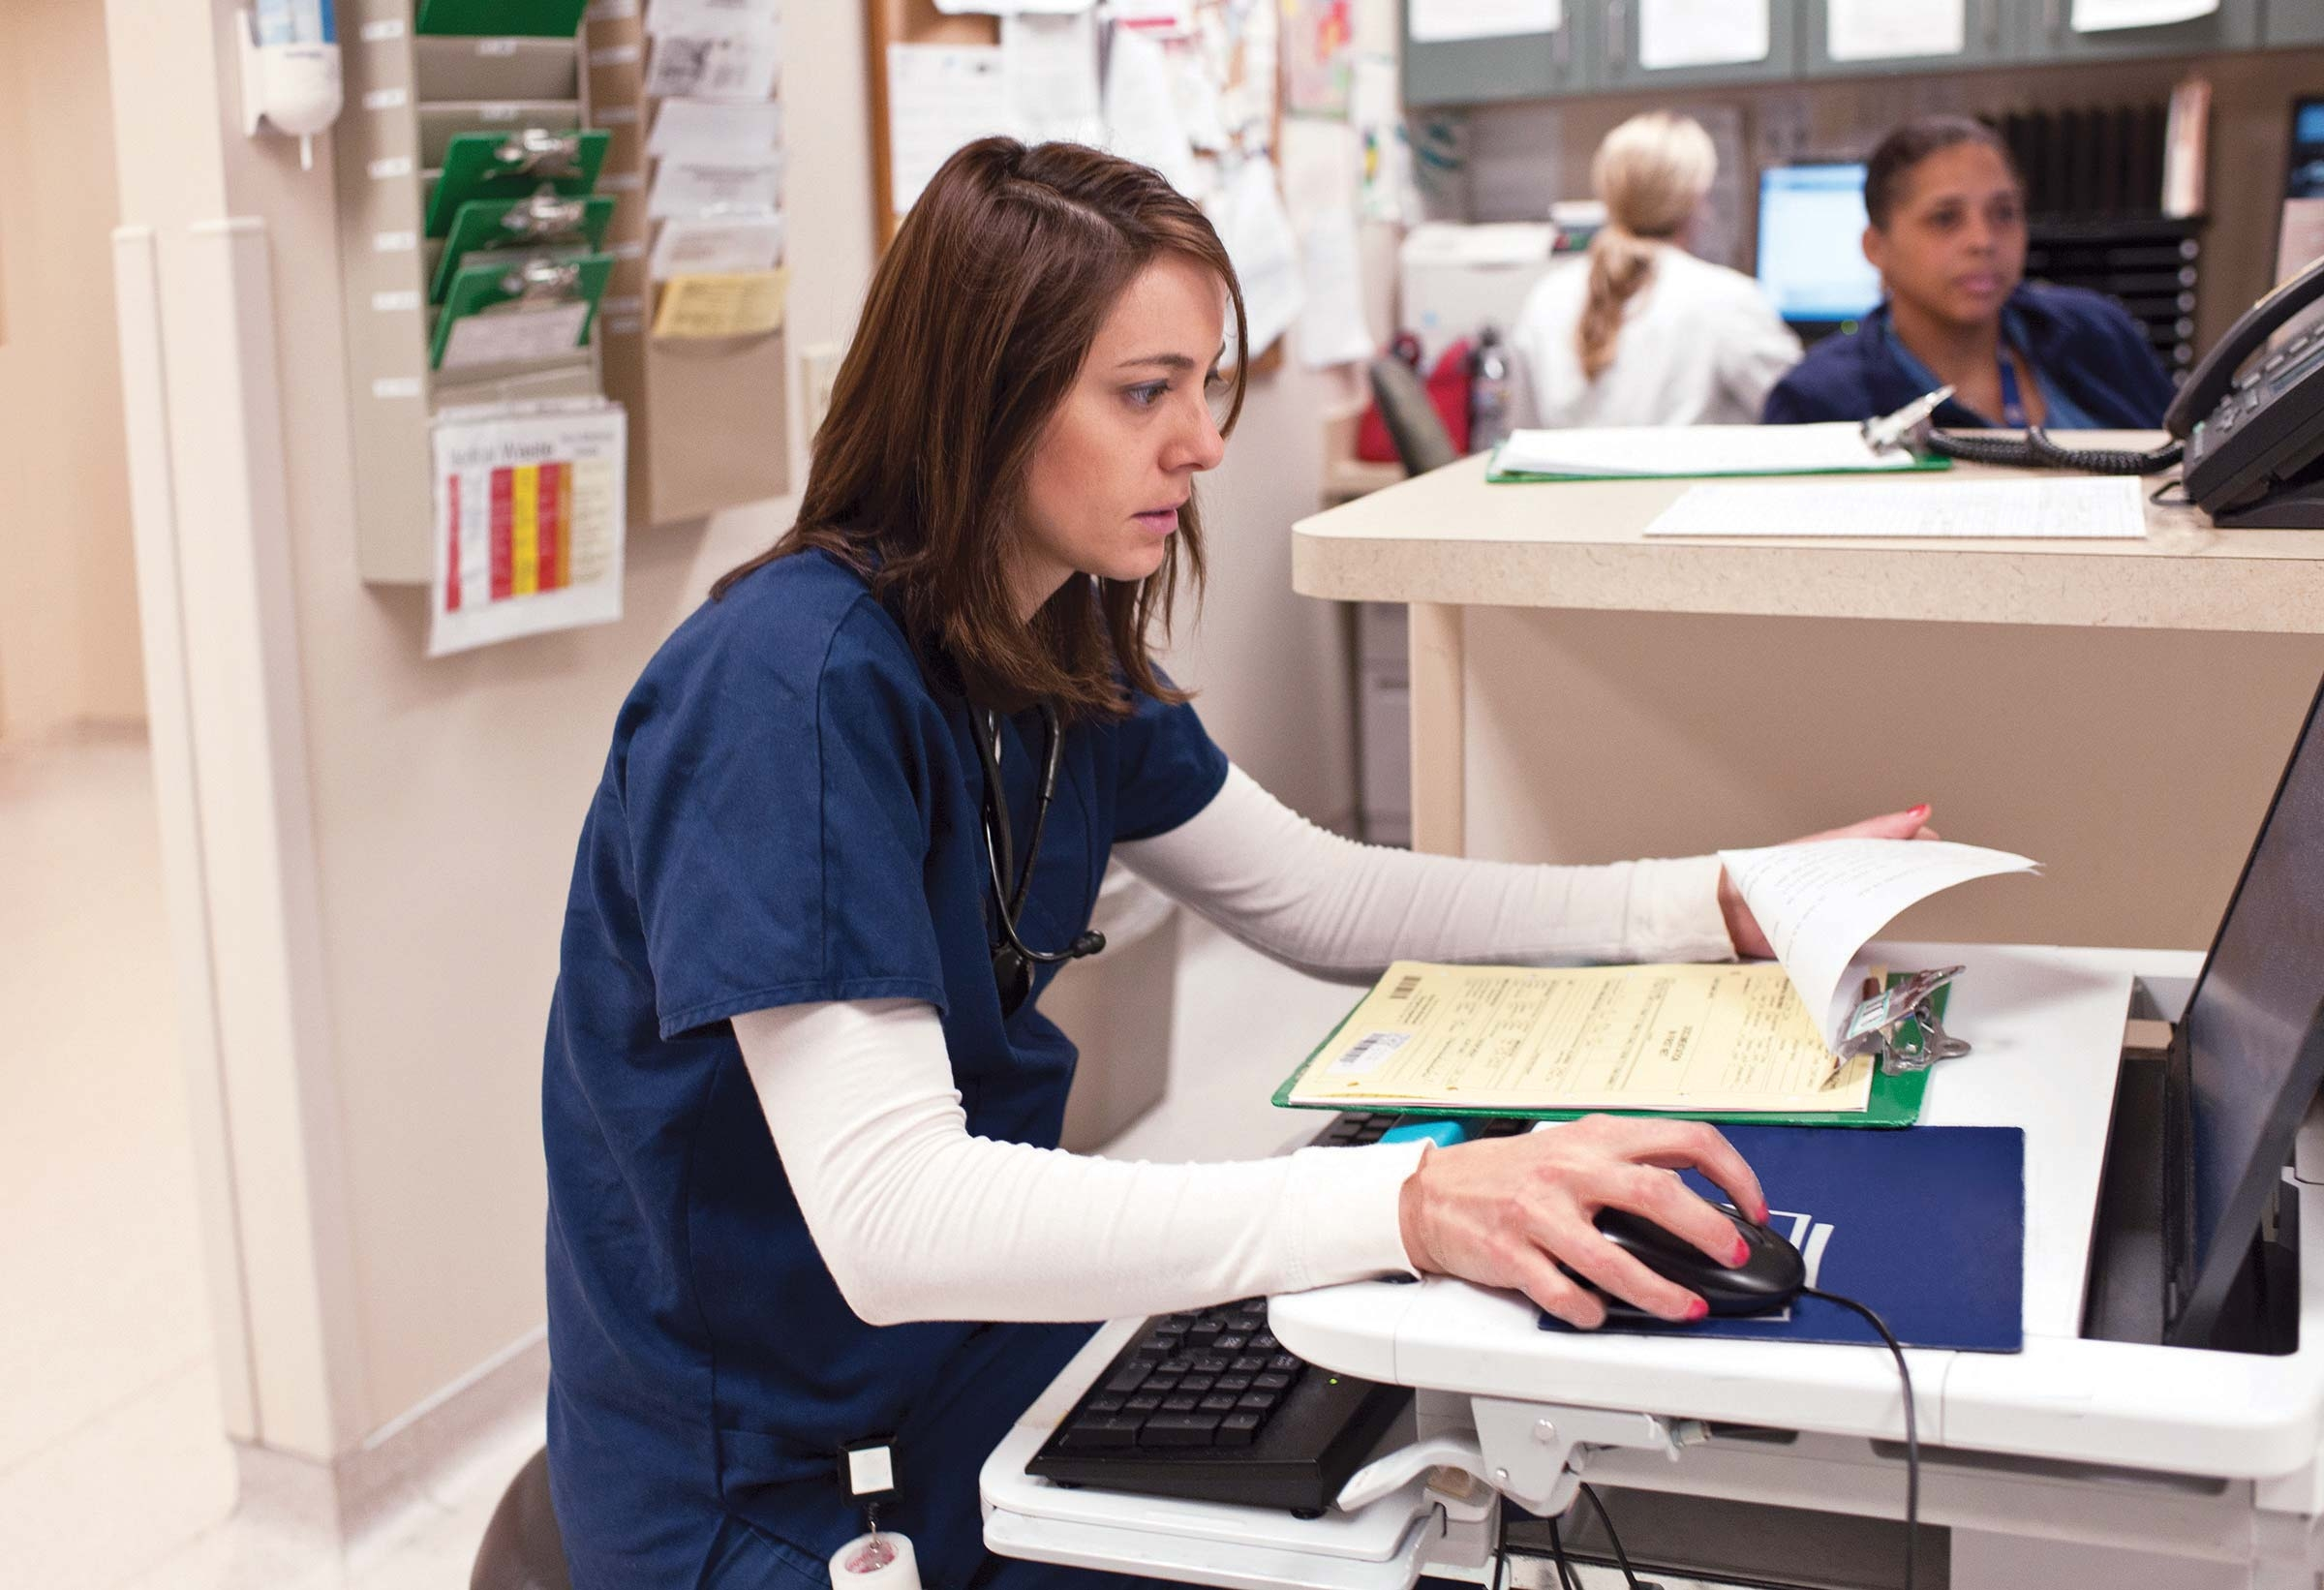 Electronic records in the ER: A breeding ground for error